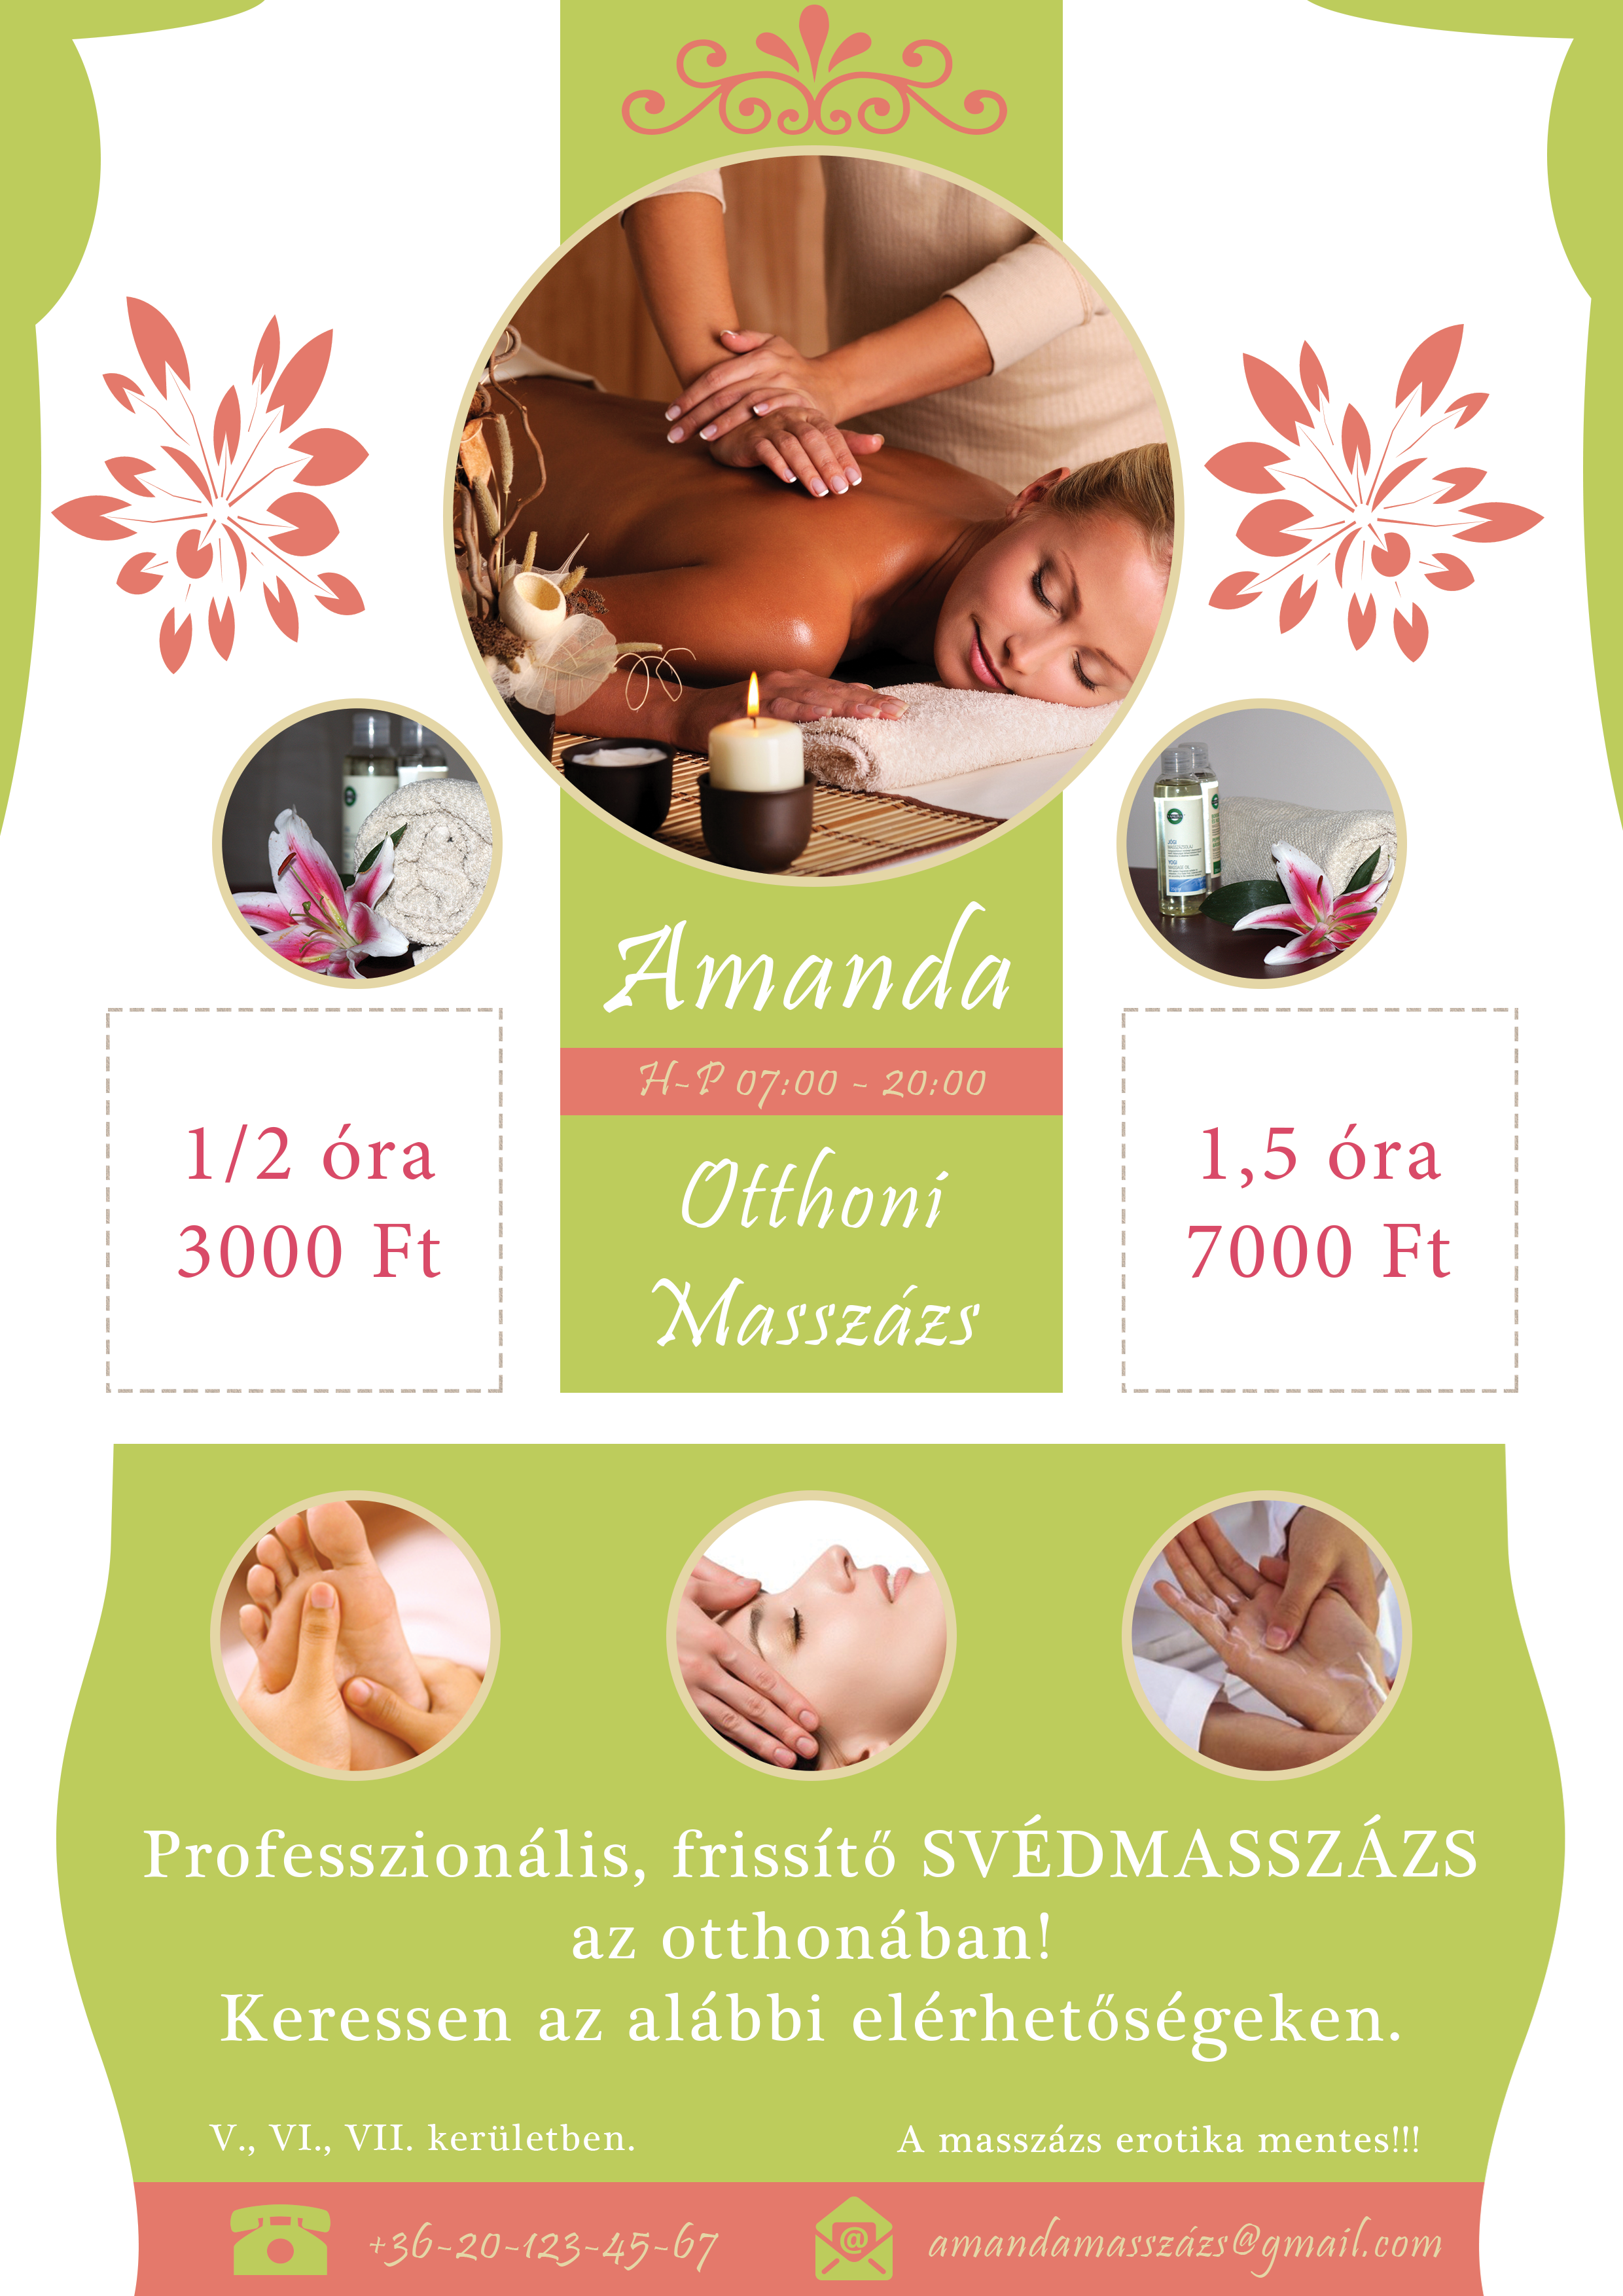 massage flyer 4 flyers szórólapok pinterest massage massage